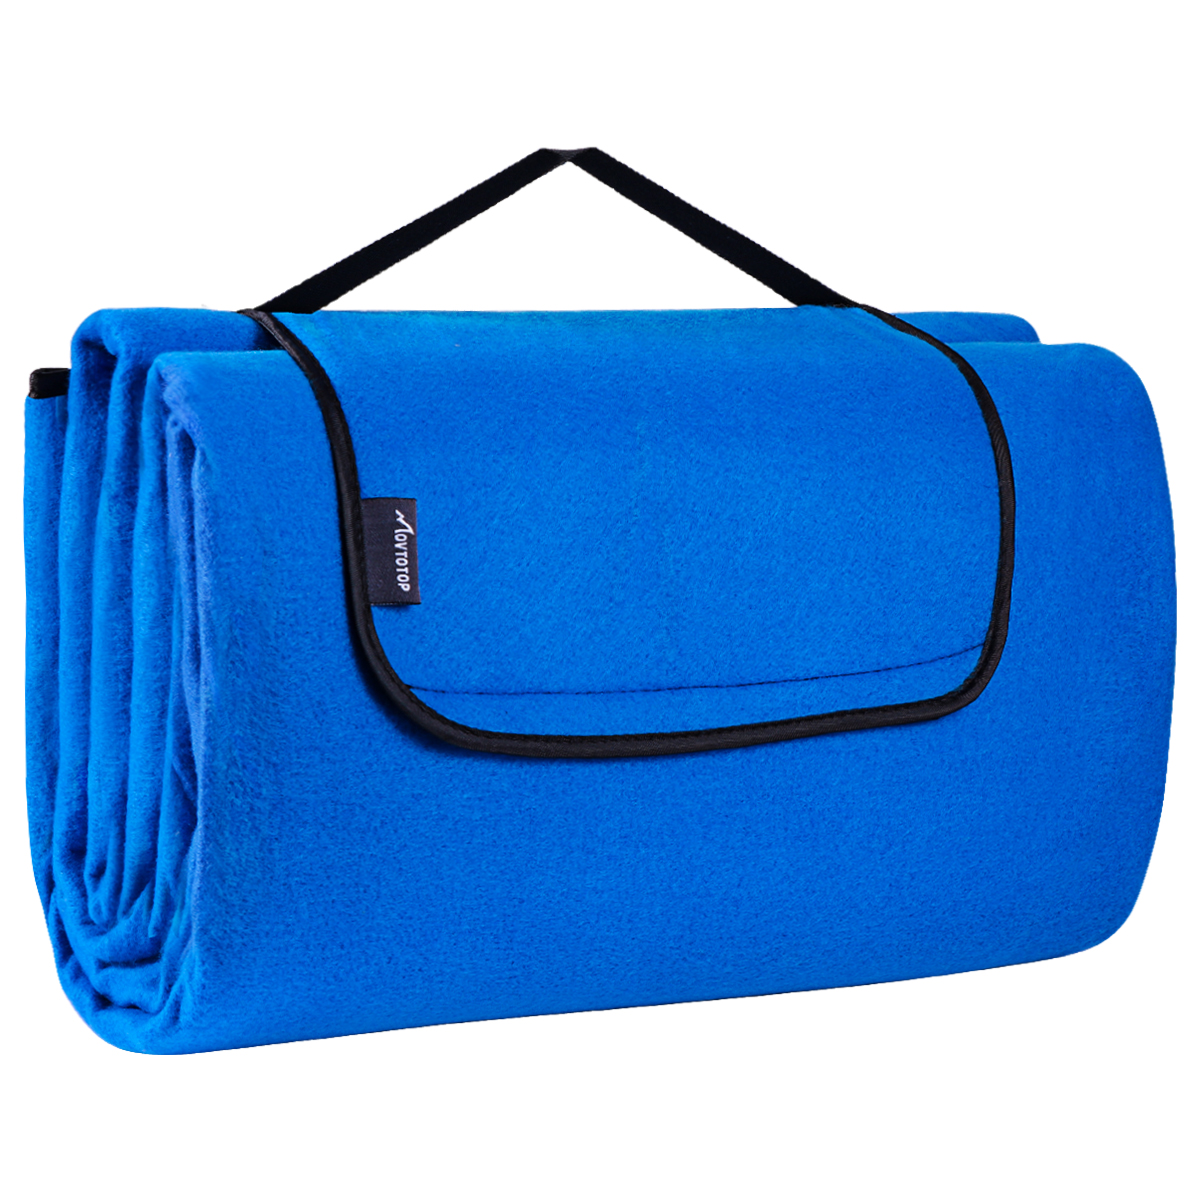 2Mx2M Picnic Blanket Waterproof Picnic Blanket Foldable Handy Mat With Strap Outdoor Camping Blanket Tote